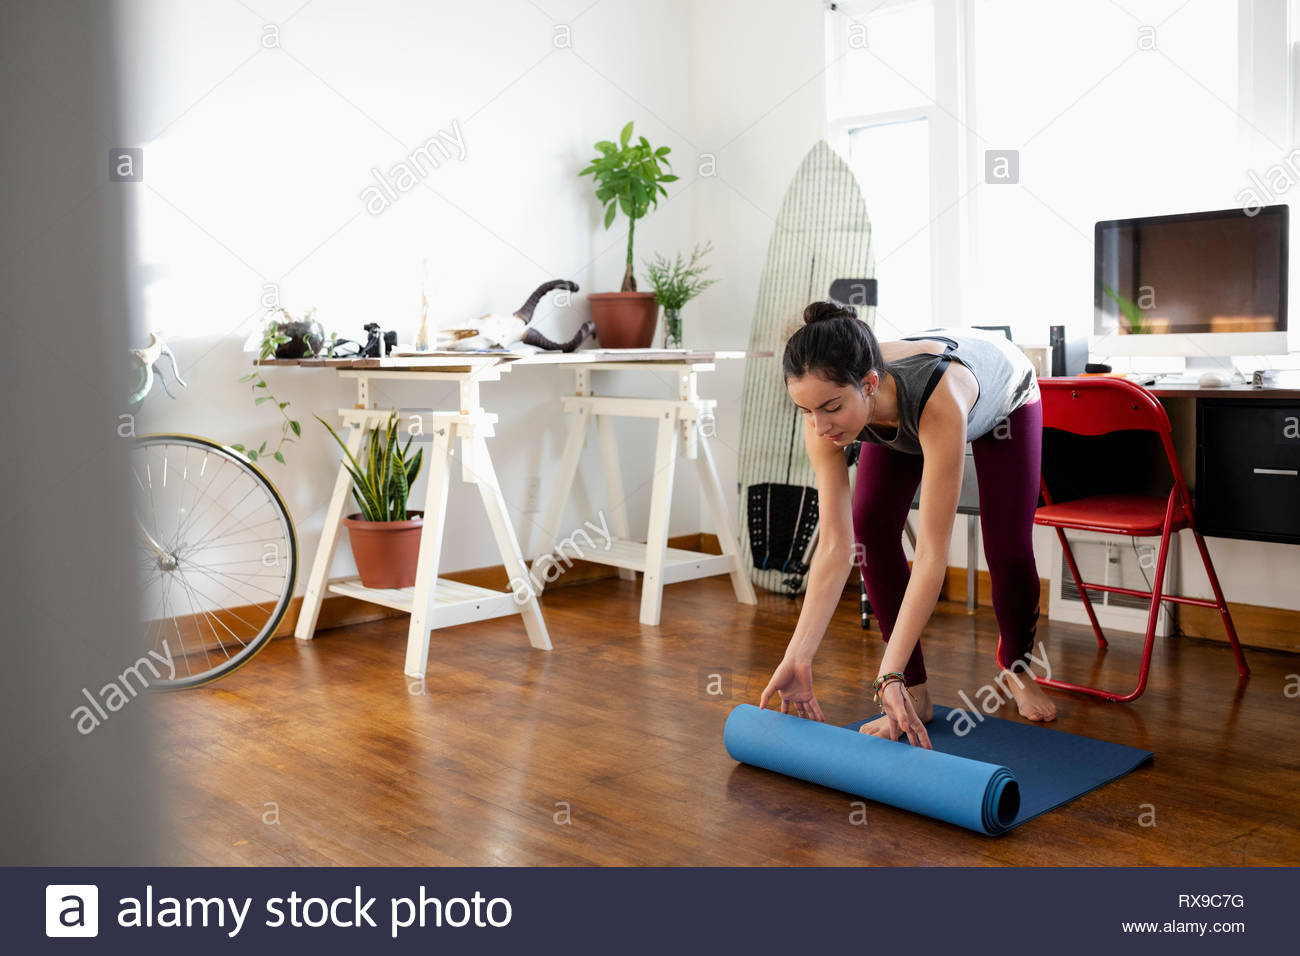 Young Latinx woman unrolling yoga mat in apartment - Stock Image